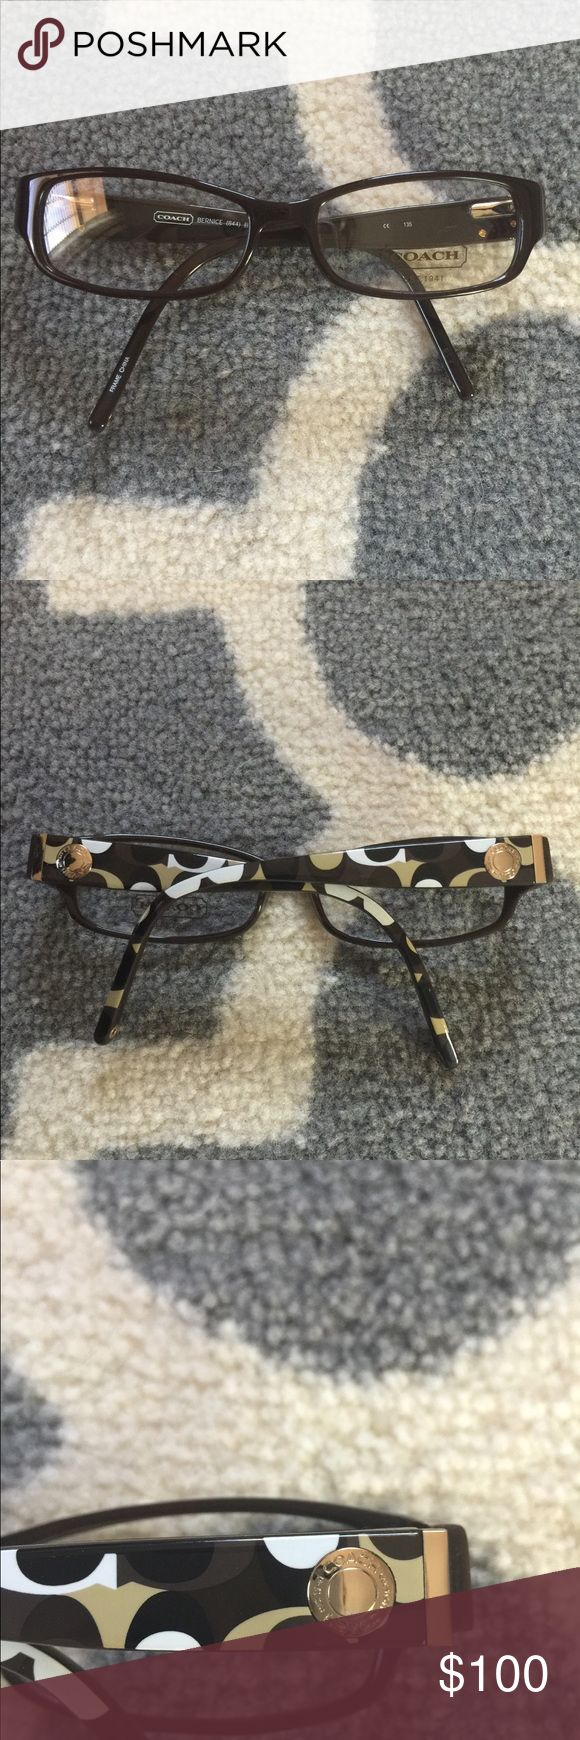 👓 New coach frames *never worn* 👓 OFFERS?!? Brand new coach frames. Perfect condition. Original lenses with Coach logo still in- you will have to have your own prescription lenses put in. Frames retail for $200+ Coach Accessories Glasses